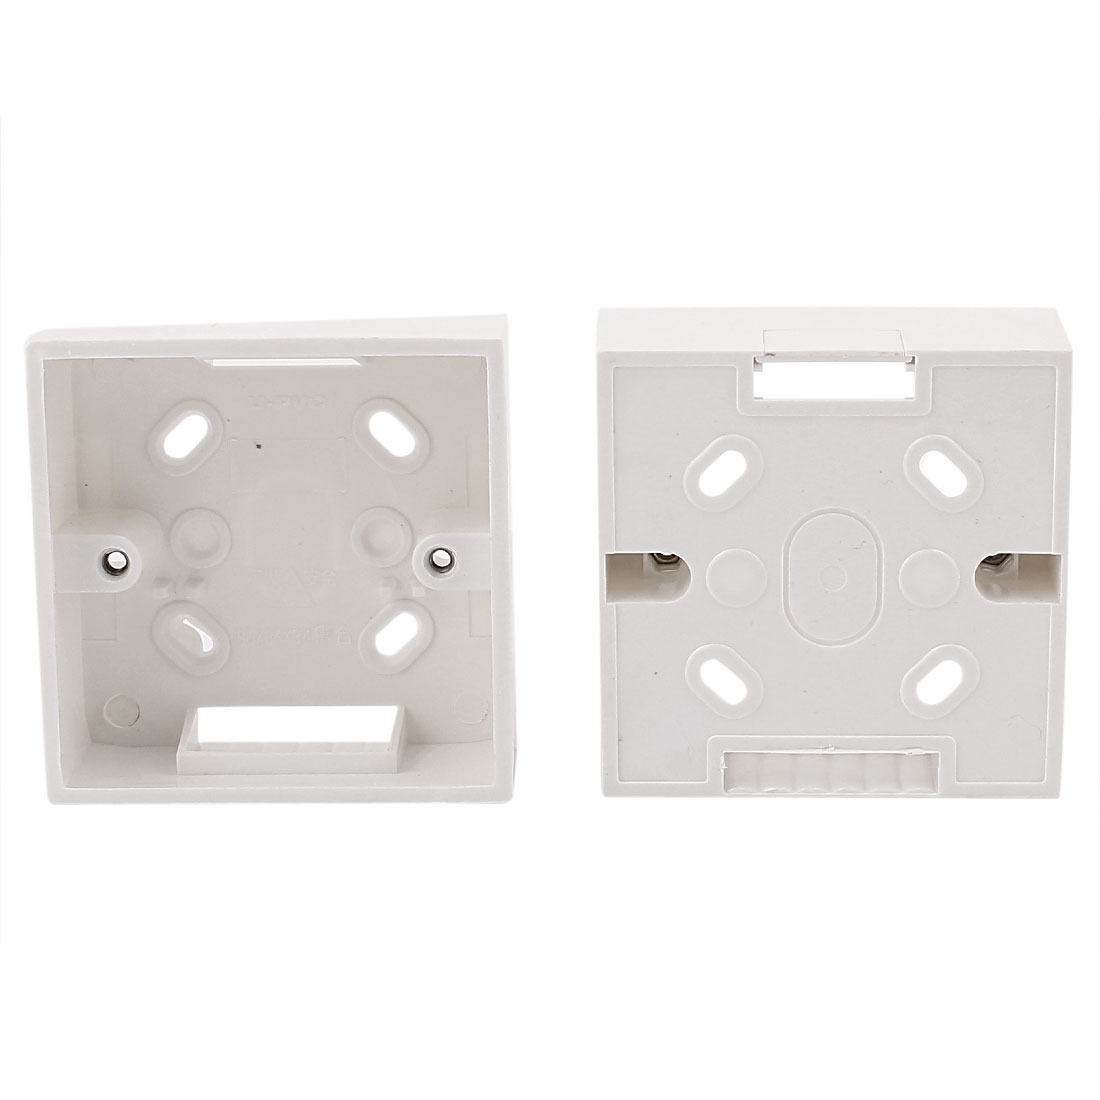 2pcs Surface Mount Pattress Back Box White 86mm x 86mm x34mm